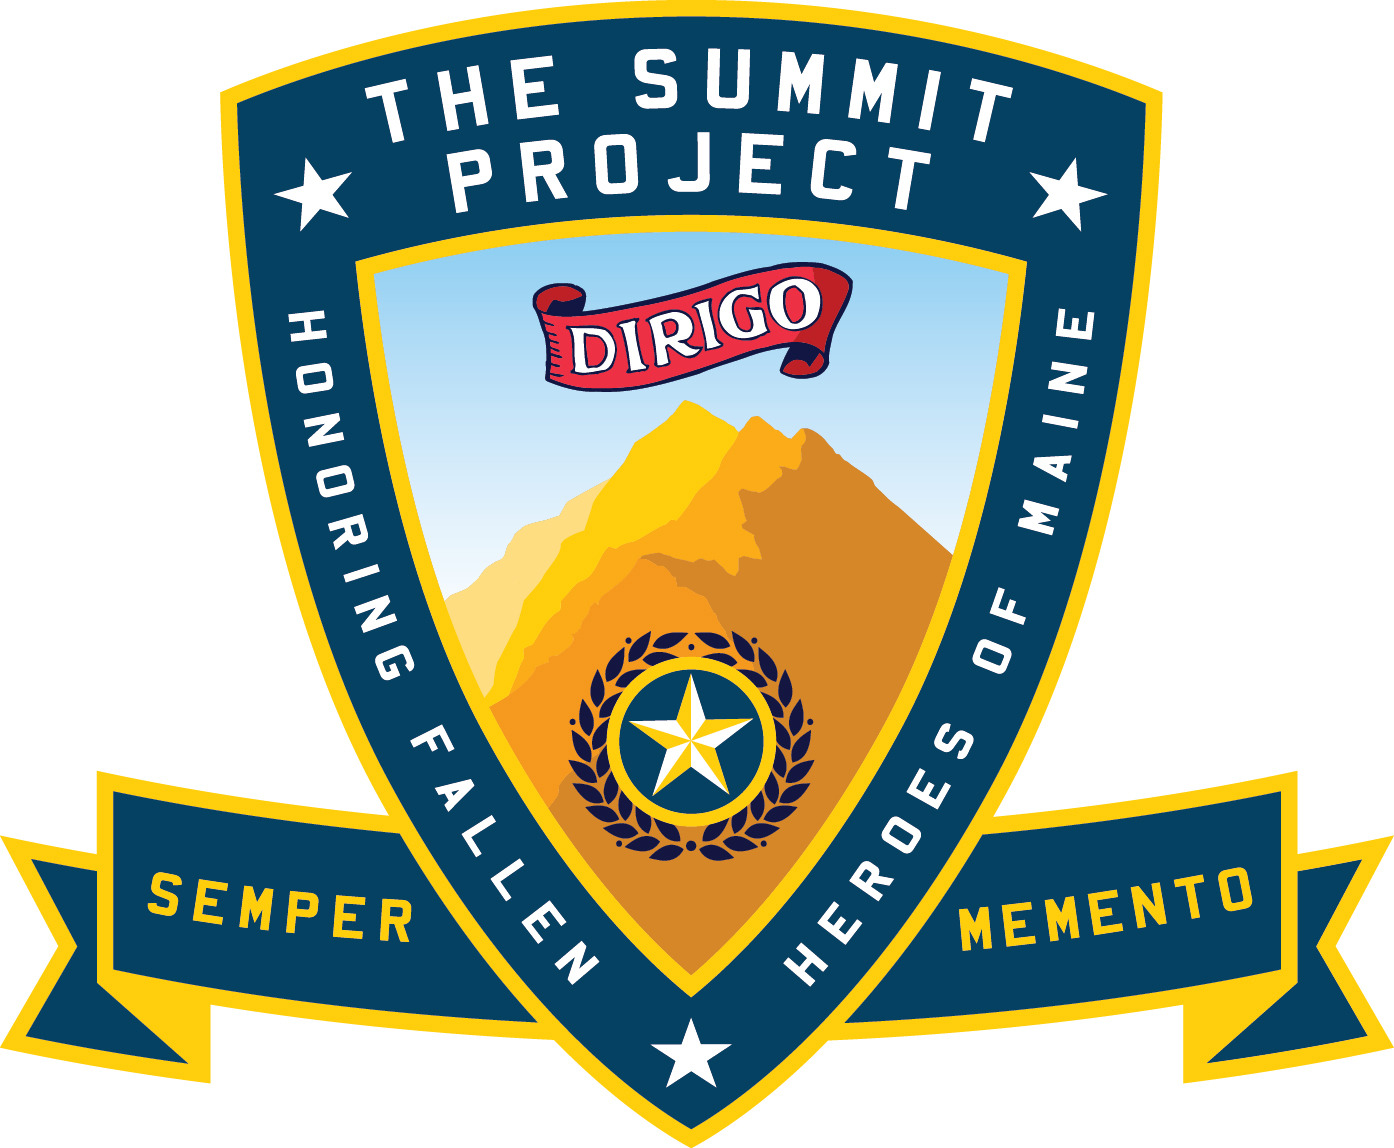 Summitproject_logo_rgb